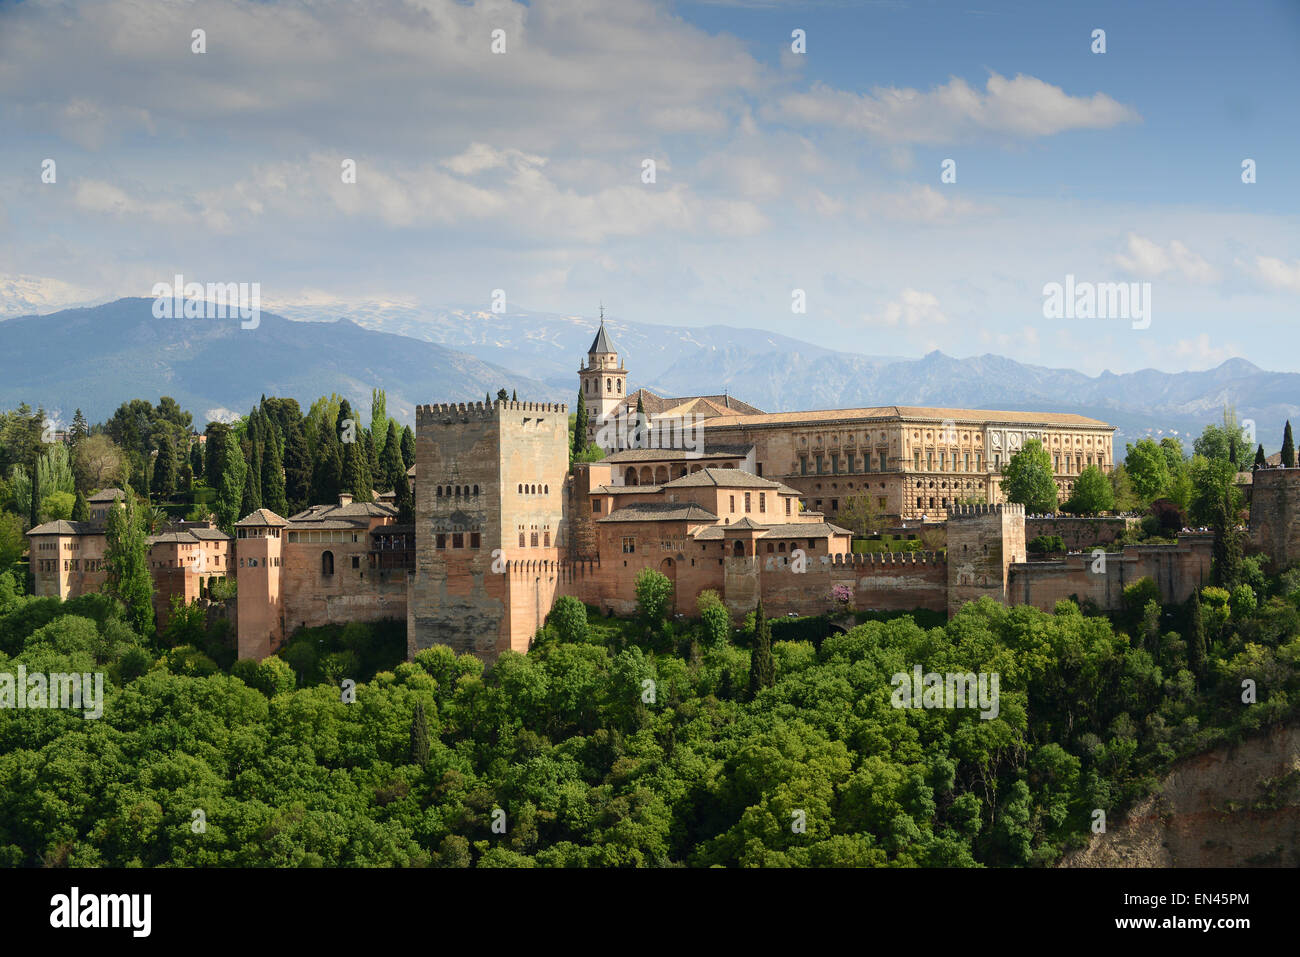 Alhambra Palace in Granada Andalucia Spain Europe - Stock Image